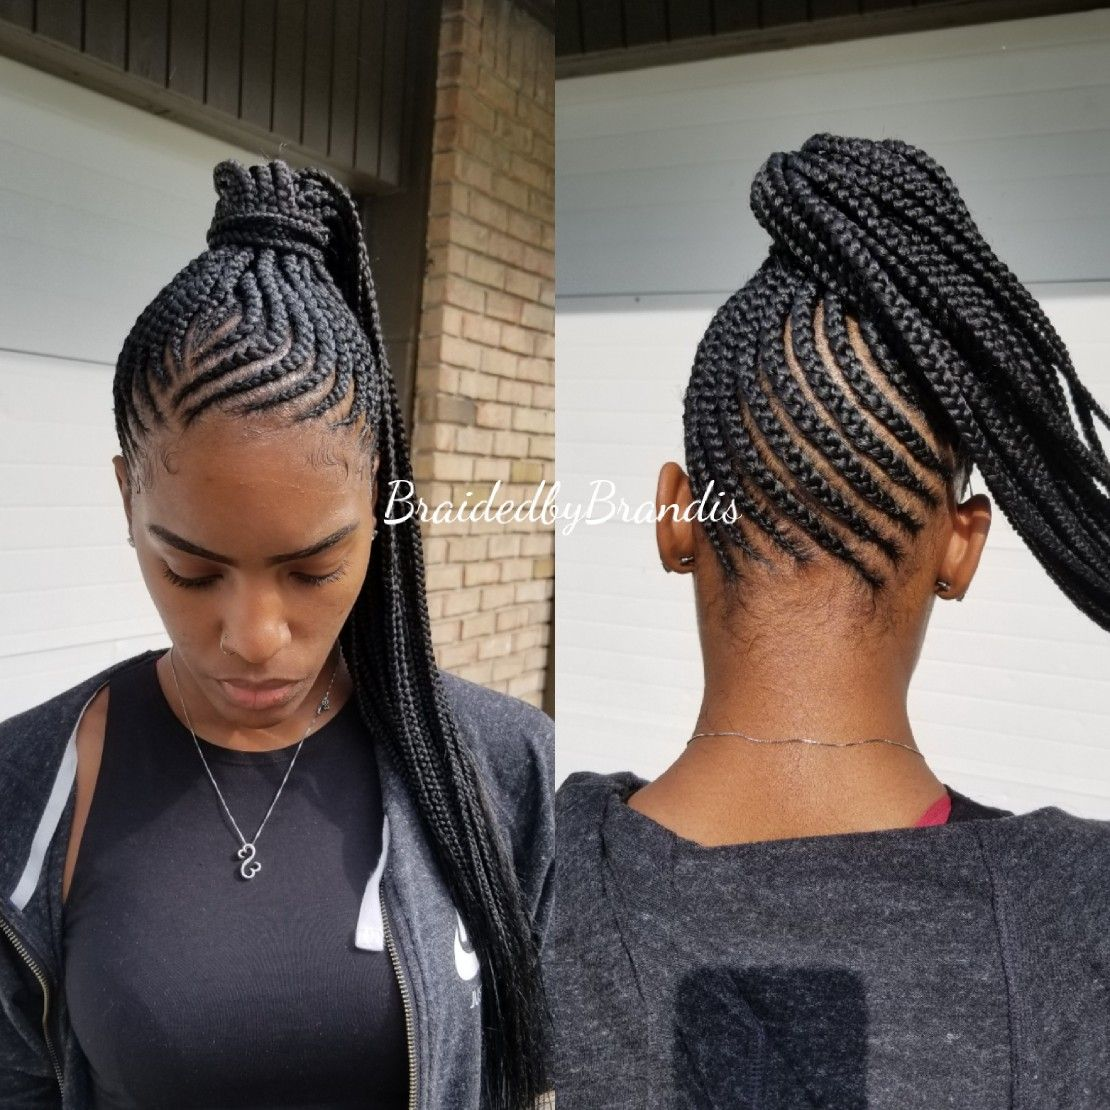 Small Feed In Ponytail Braided Ponytail Black Hair Feed In Braids Ponytail Small Feed In Braids